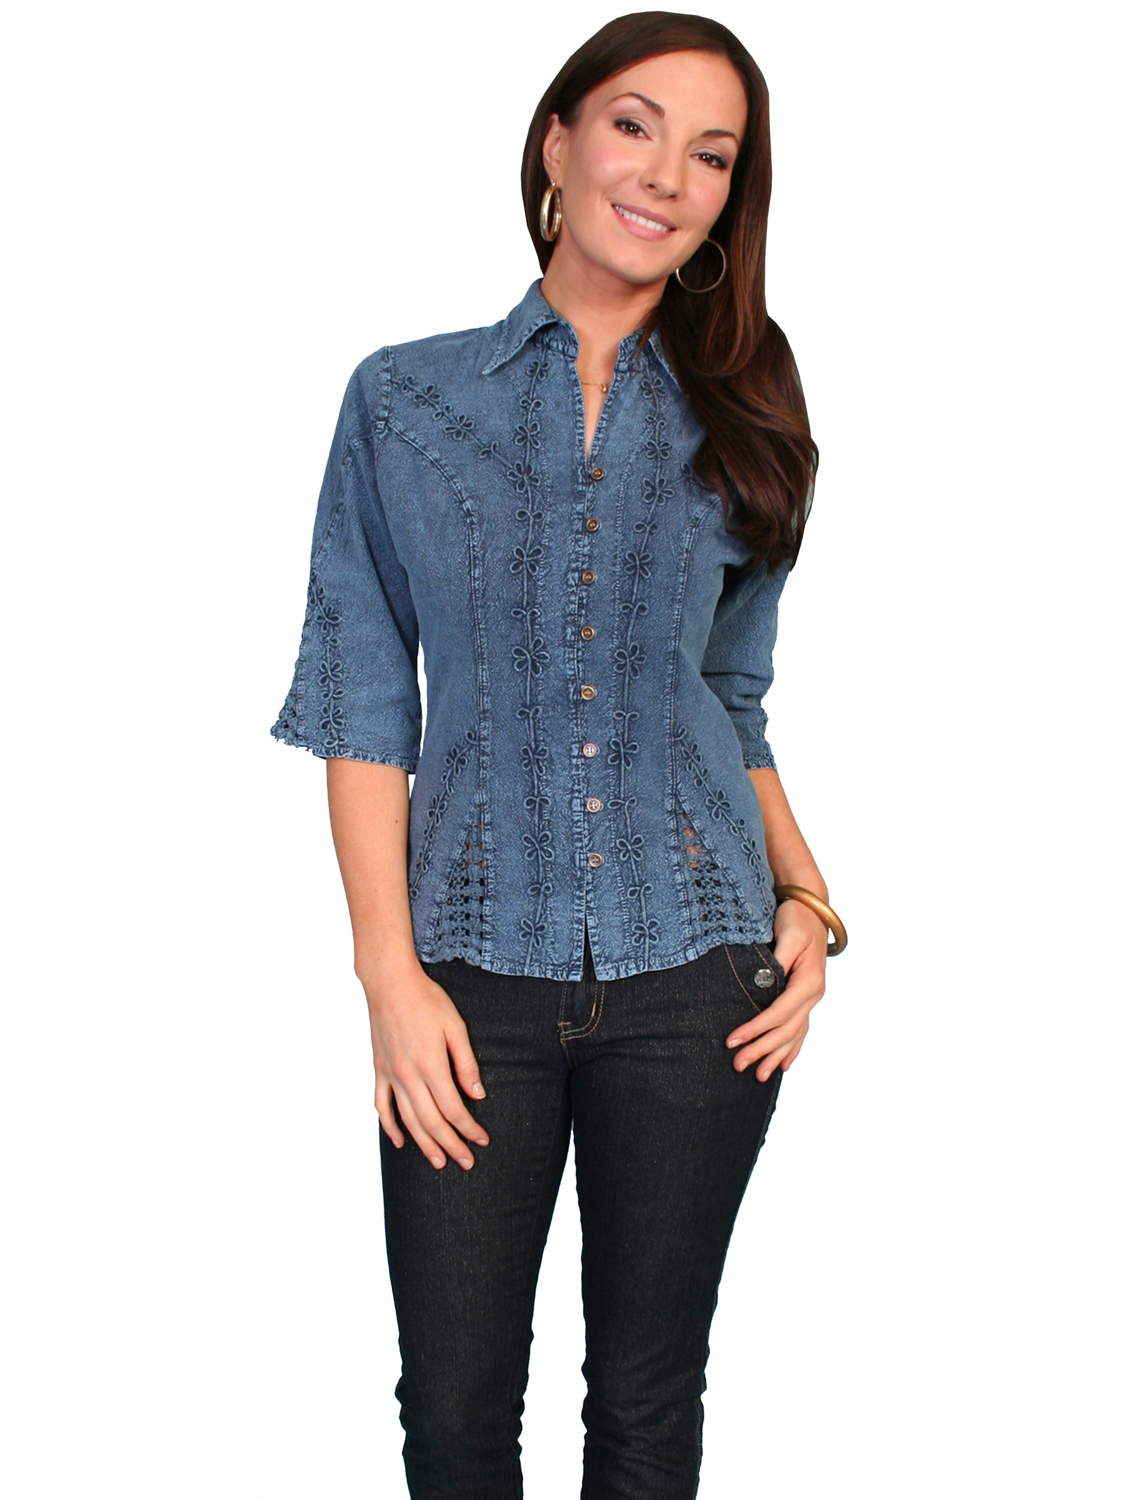 cc070ffcd9ad Scully Cantina Womens Dark Blue 100% Cotton 3/4S Floral Vine Blouse;  Picture 2 of 2